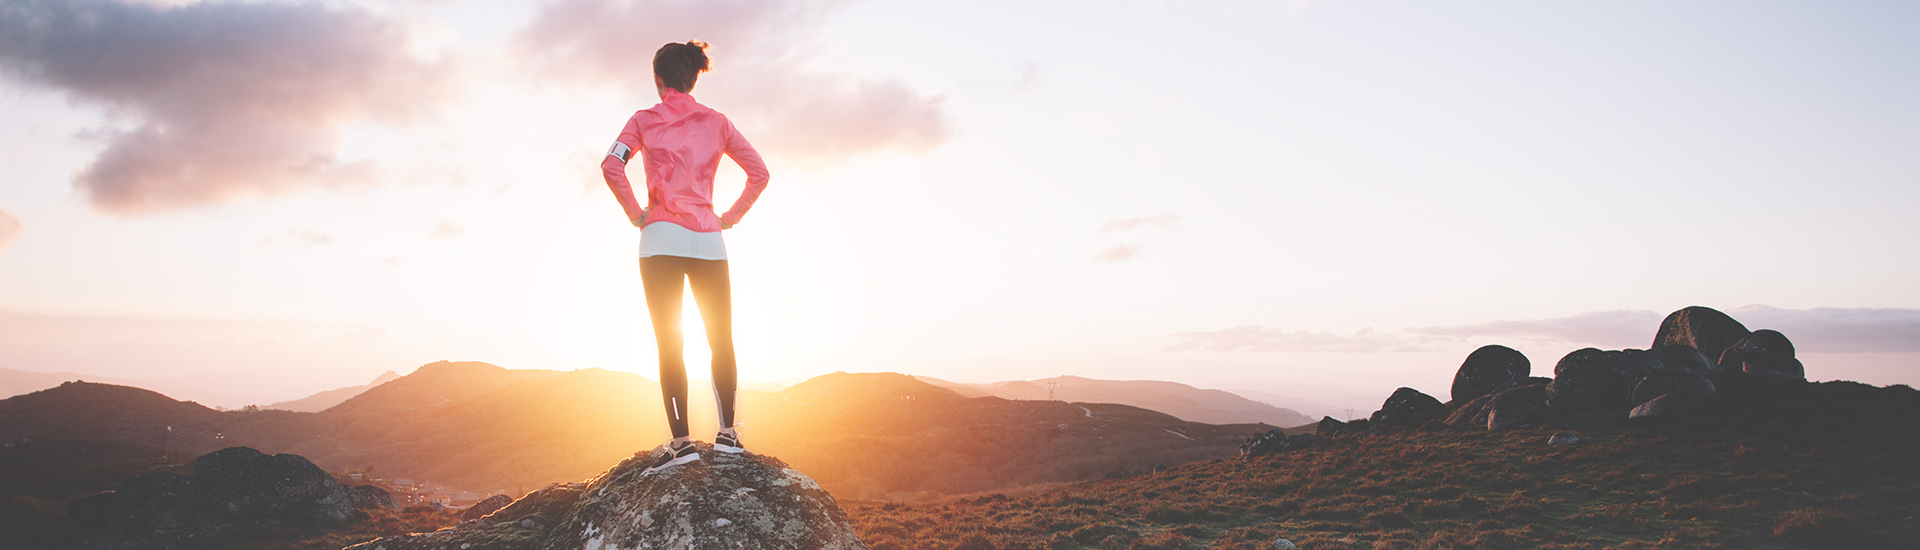 Sports woman examines mountain landscape for training on running